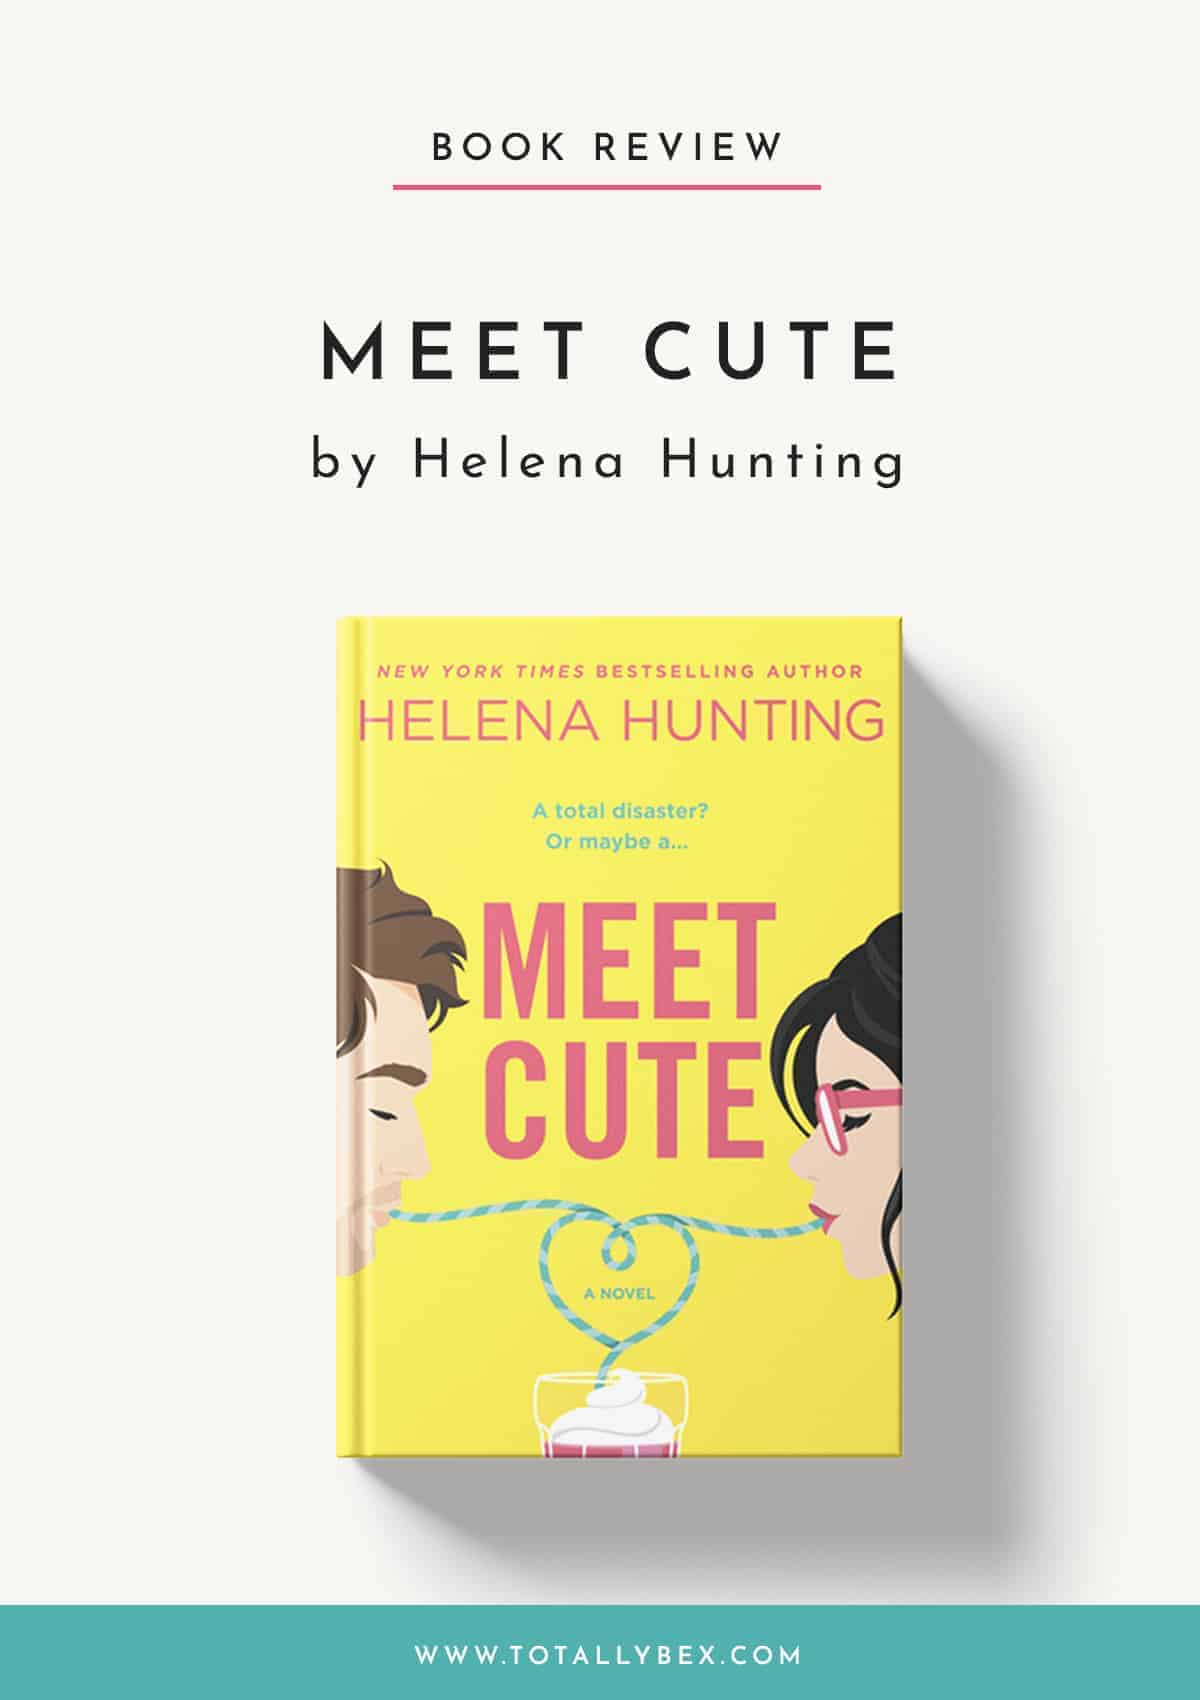 Meet Cute by Helena Hunting-Book Review